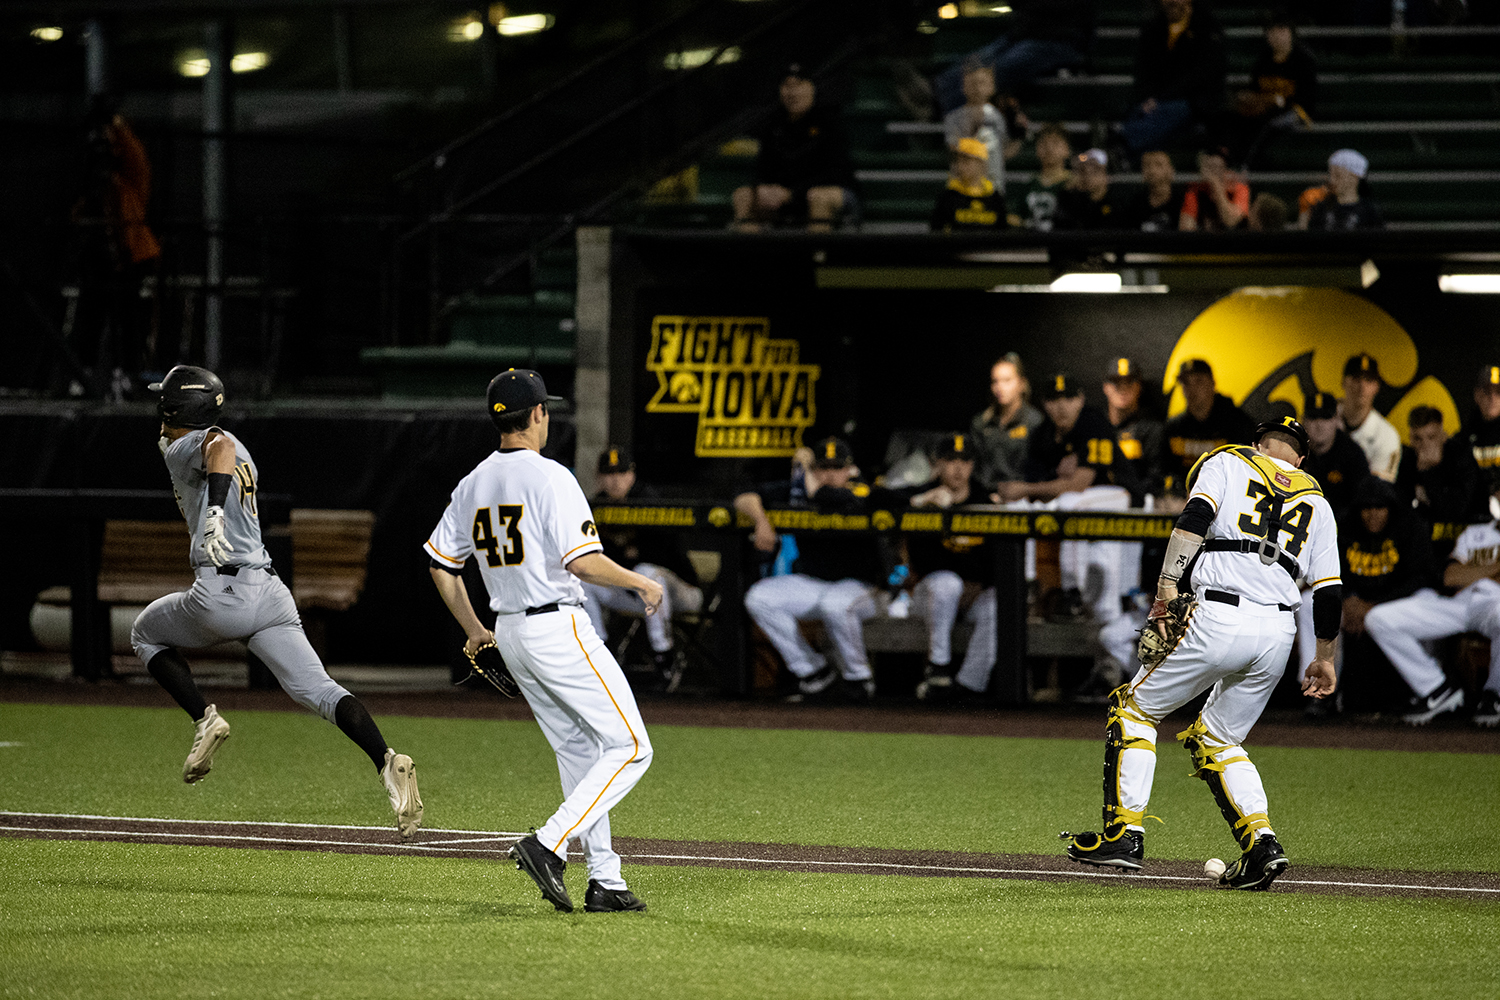 Iowa+catcher+Austin+Martin+waits+for+the+ball+to+become+a+foul+during+the+baseball+game+against+Milwaukee+at+Duane+Banks+Field+on+Tuesday%2C+April+23%2C+2019.+The+Hawkeyes+defeated+the+Panthers+5-4.